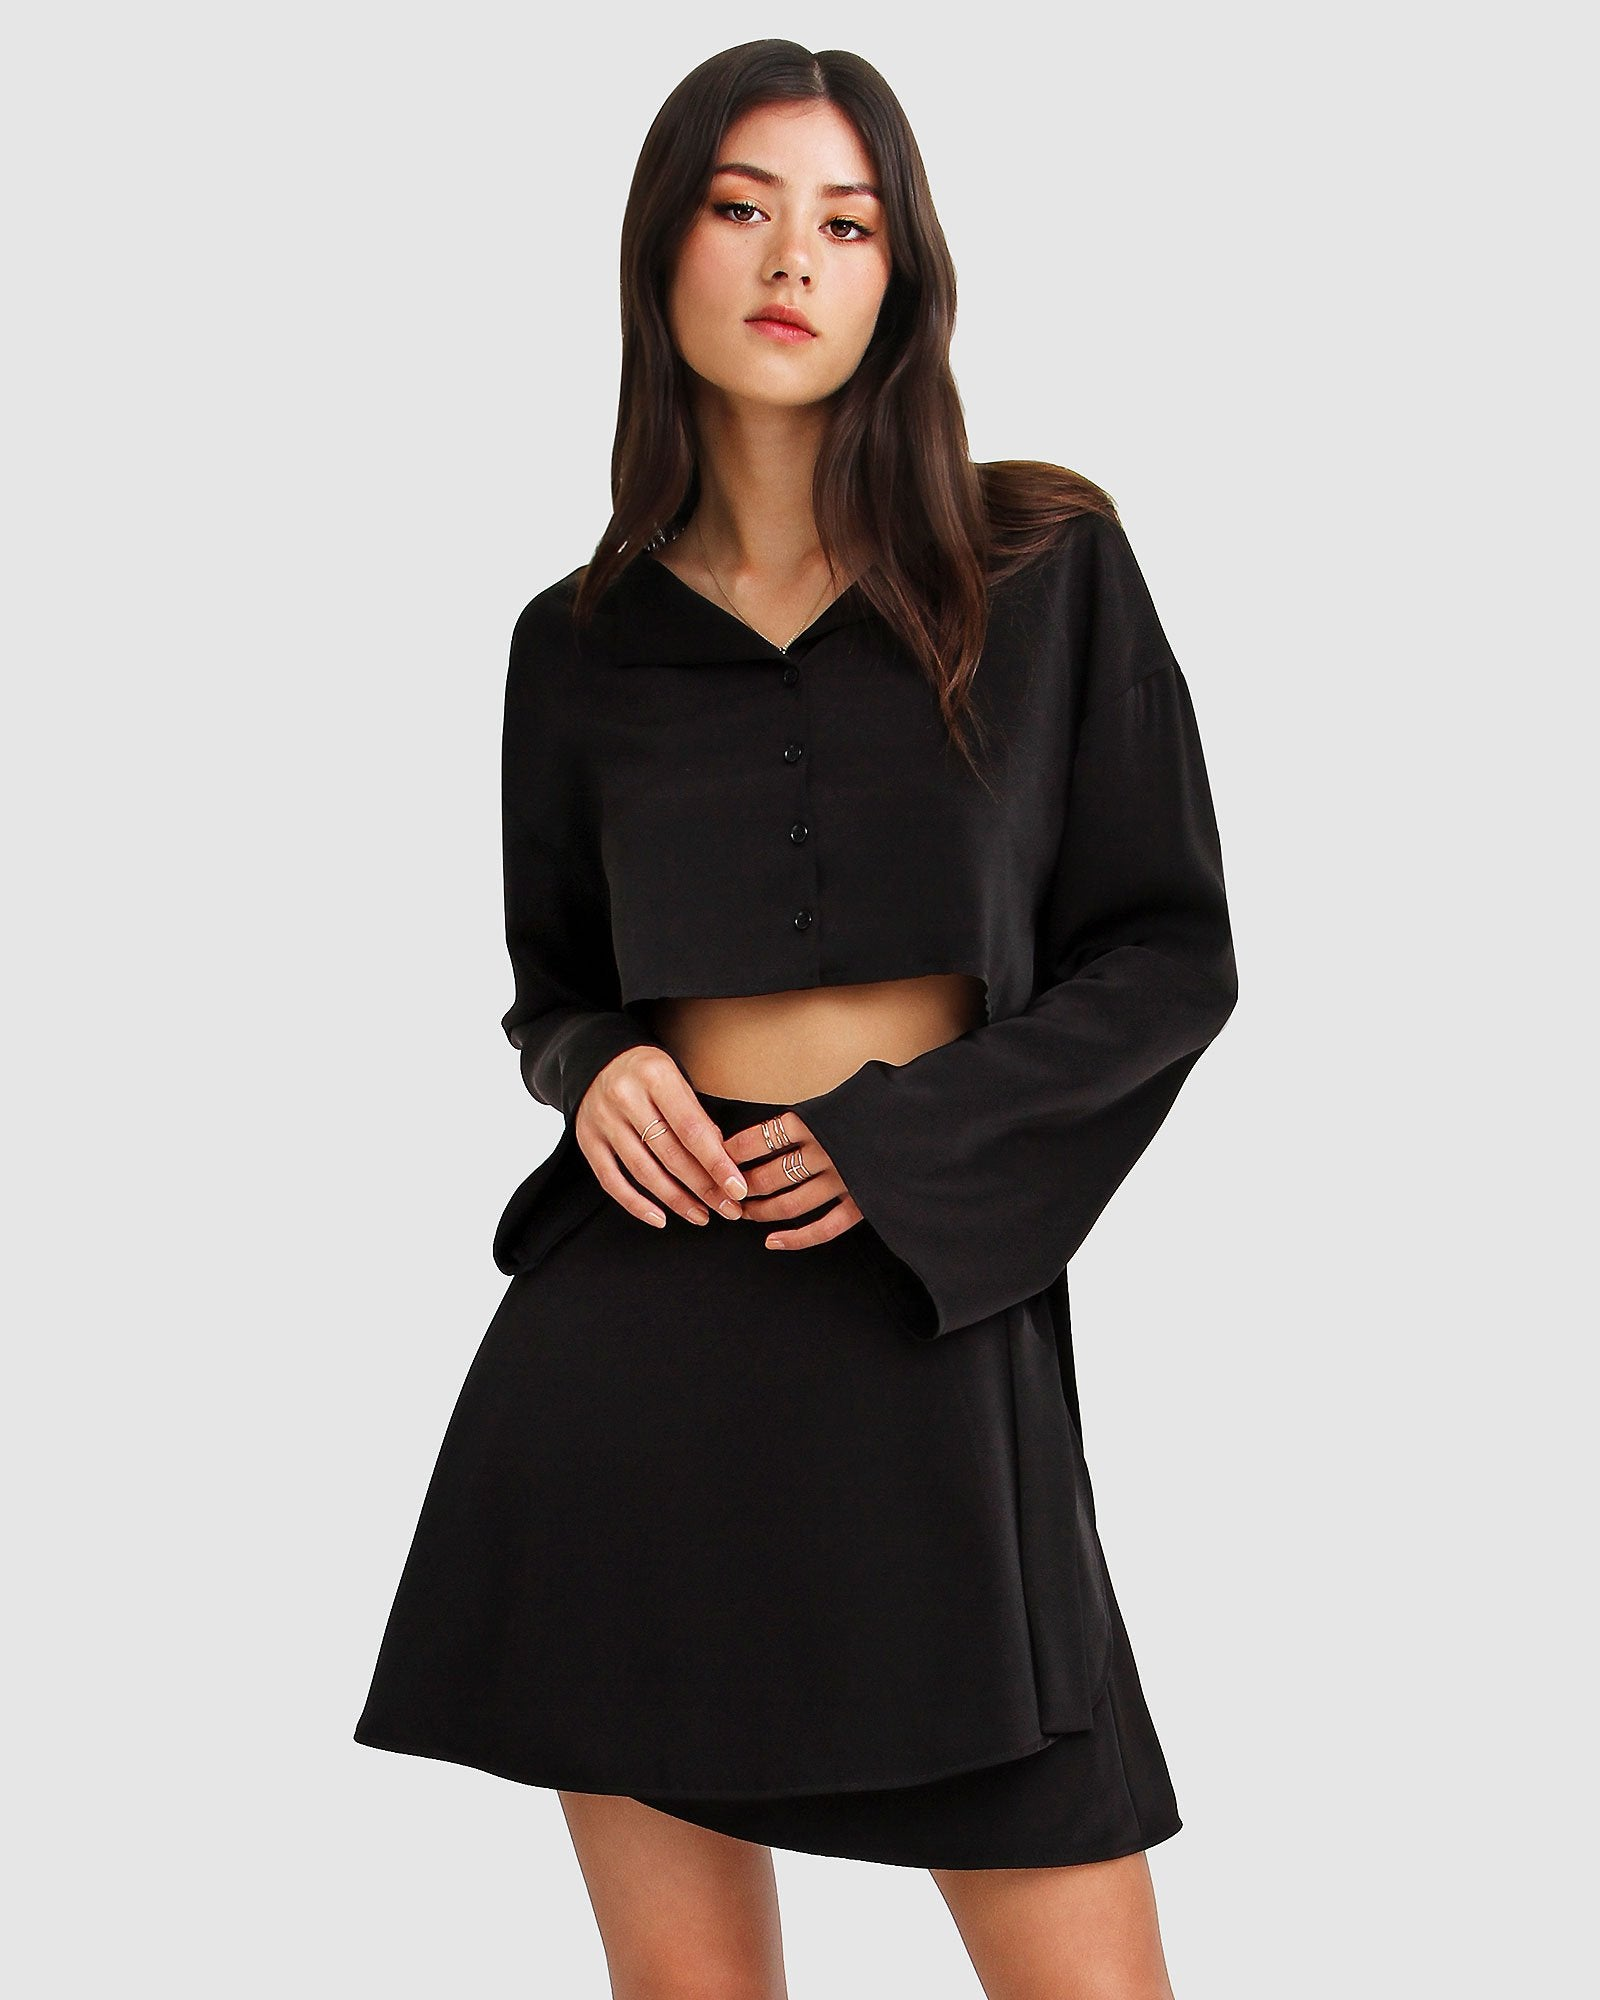 before-you-go-black-skirt-set-front.jpg